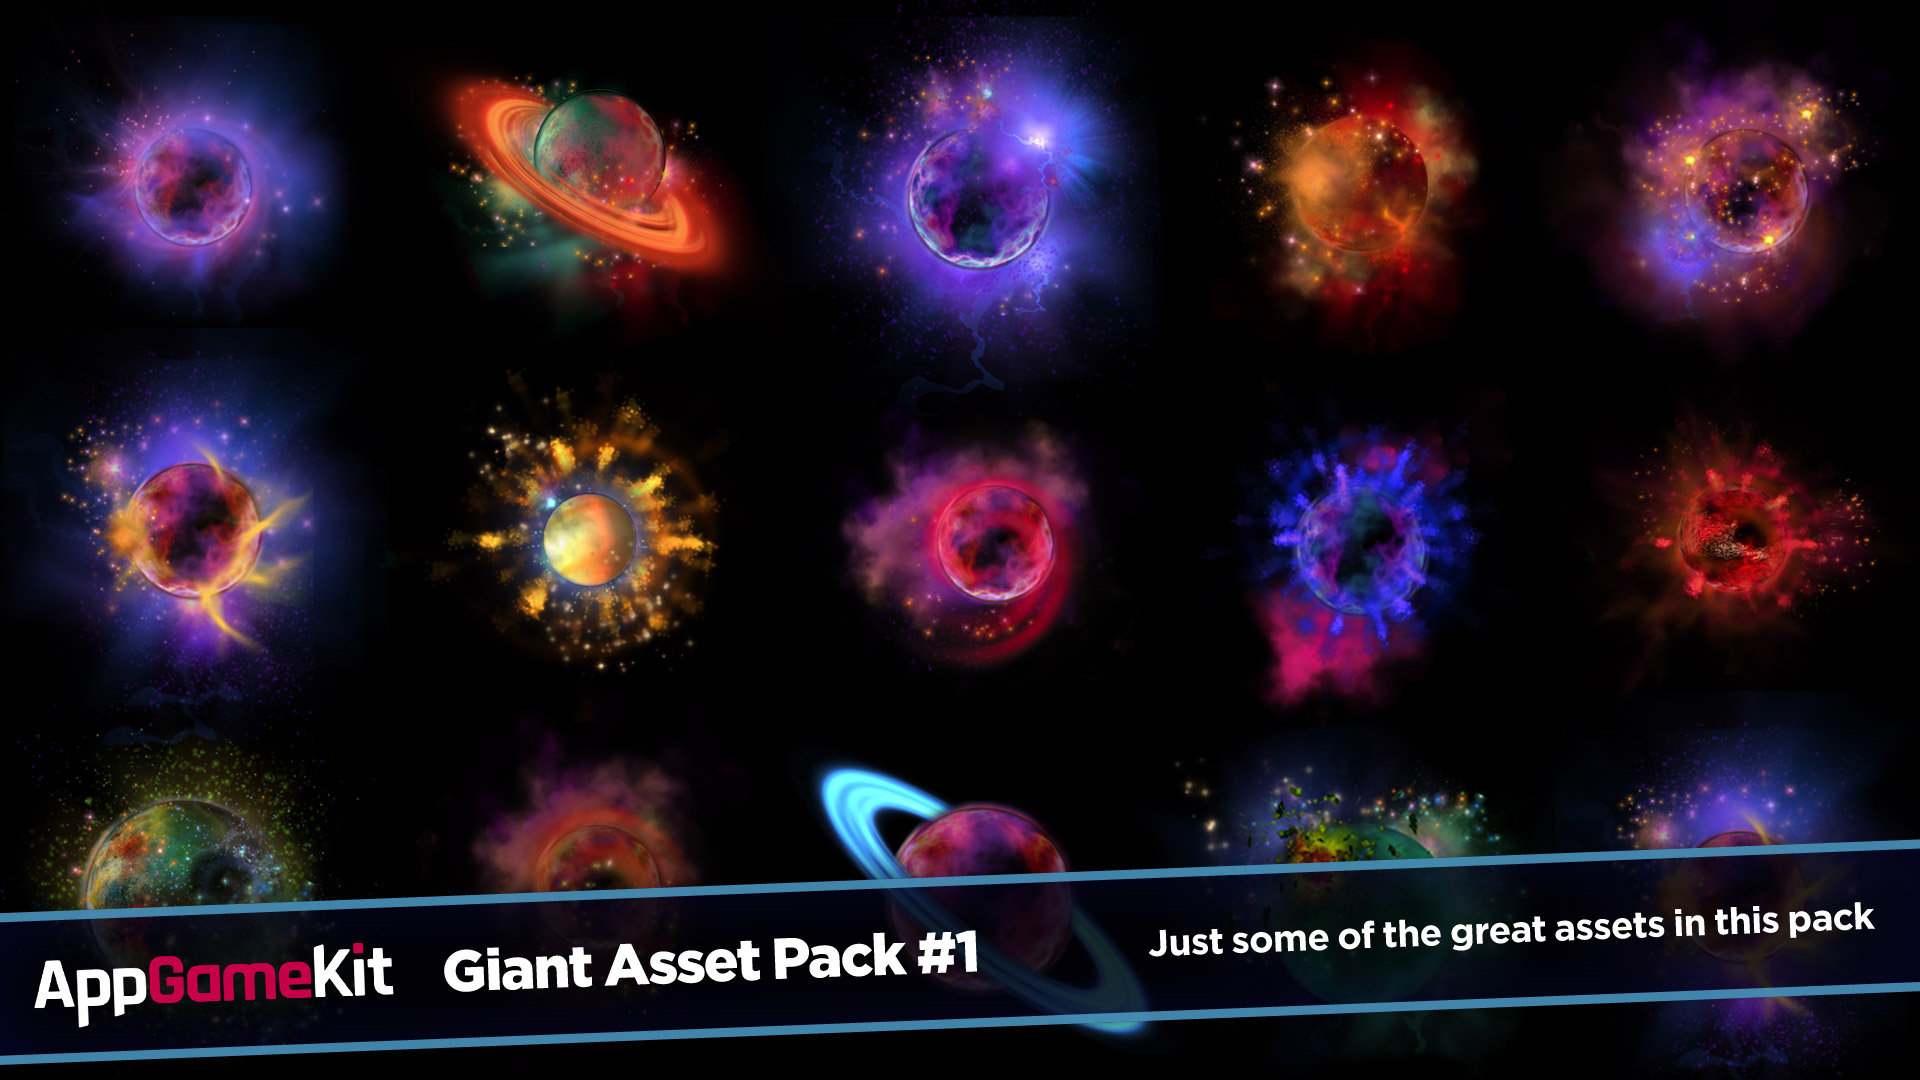 AppGameKit Classic - Giant Asset Pack 1 screenshot